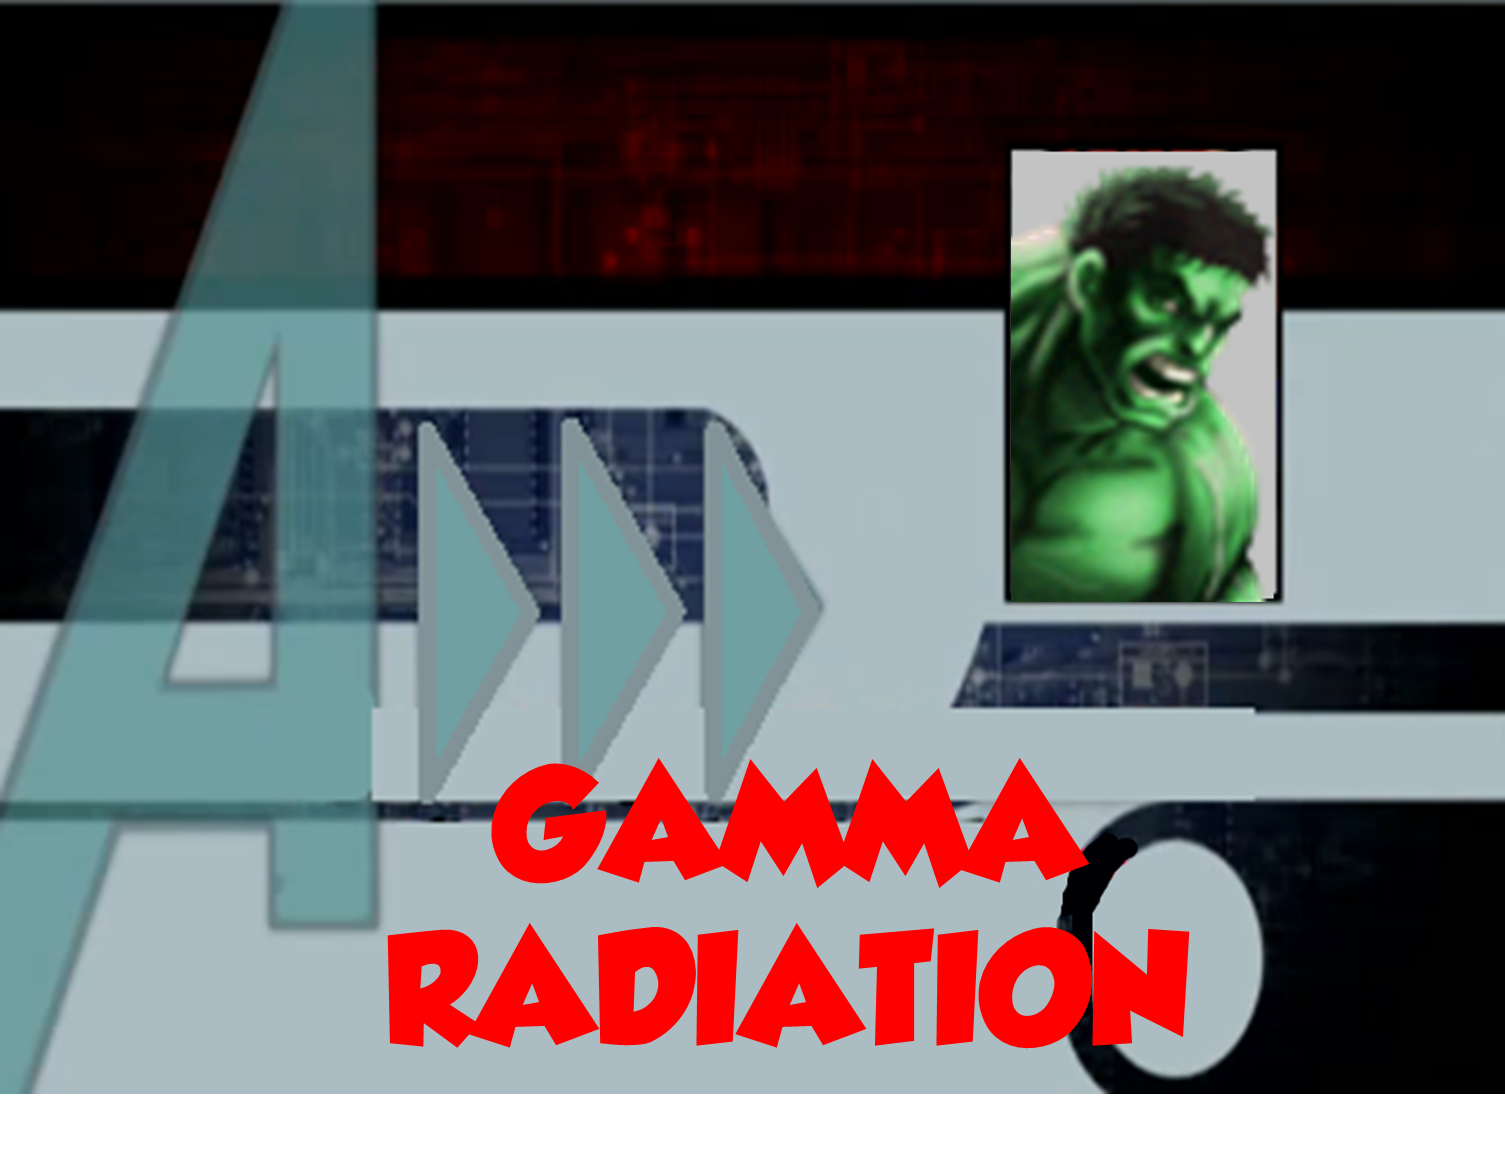 Gamma Radiation (A!)